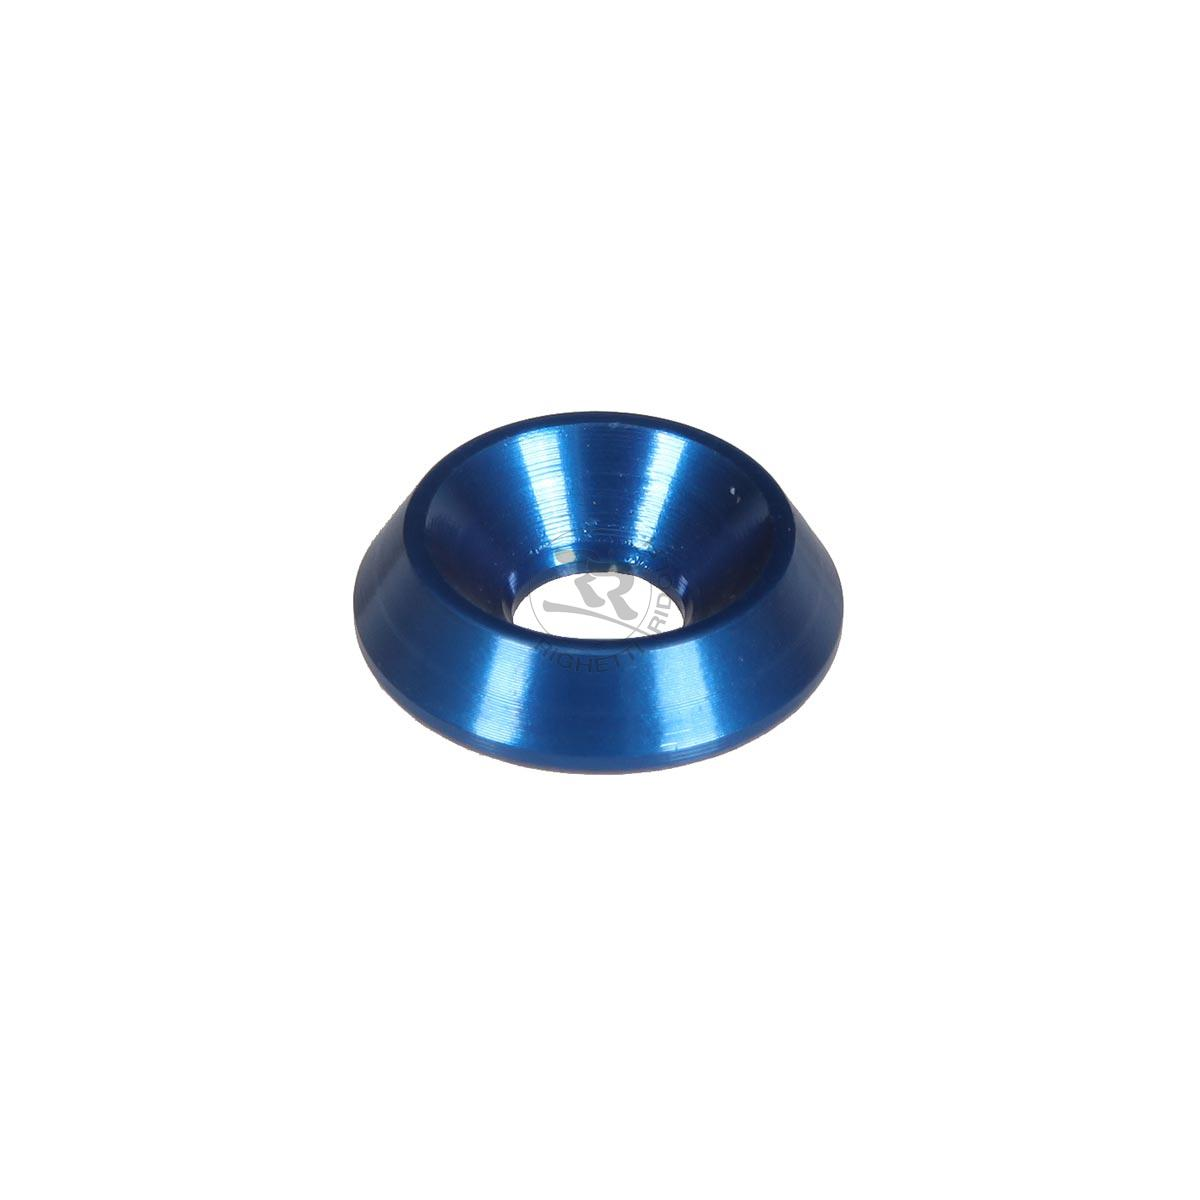 ALUMINIUM COUNTERSUNK WASHER 18 x 6mm, BLUE ANODIZED